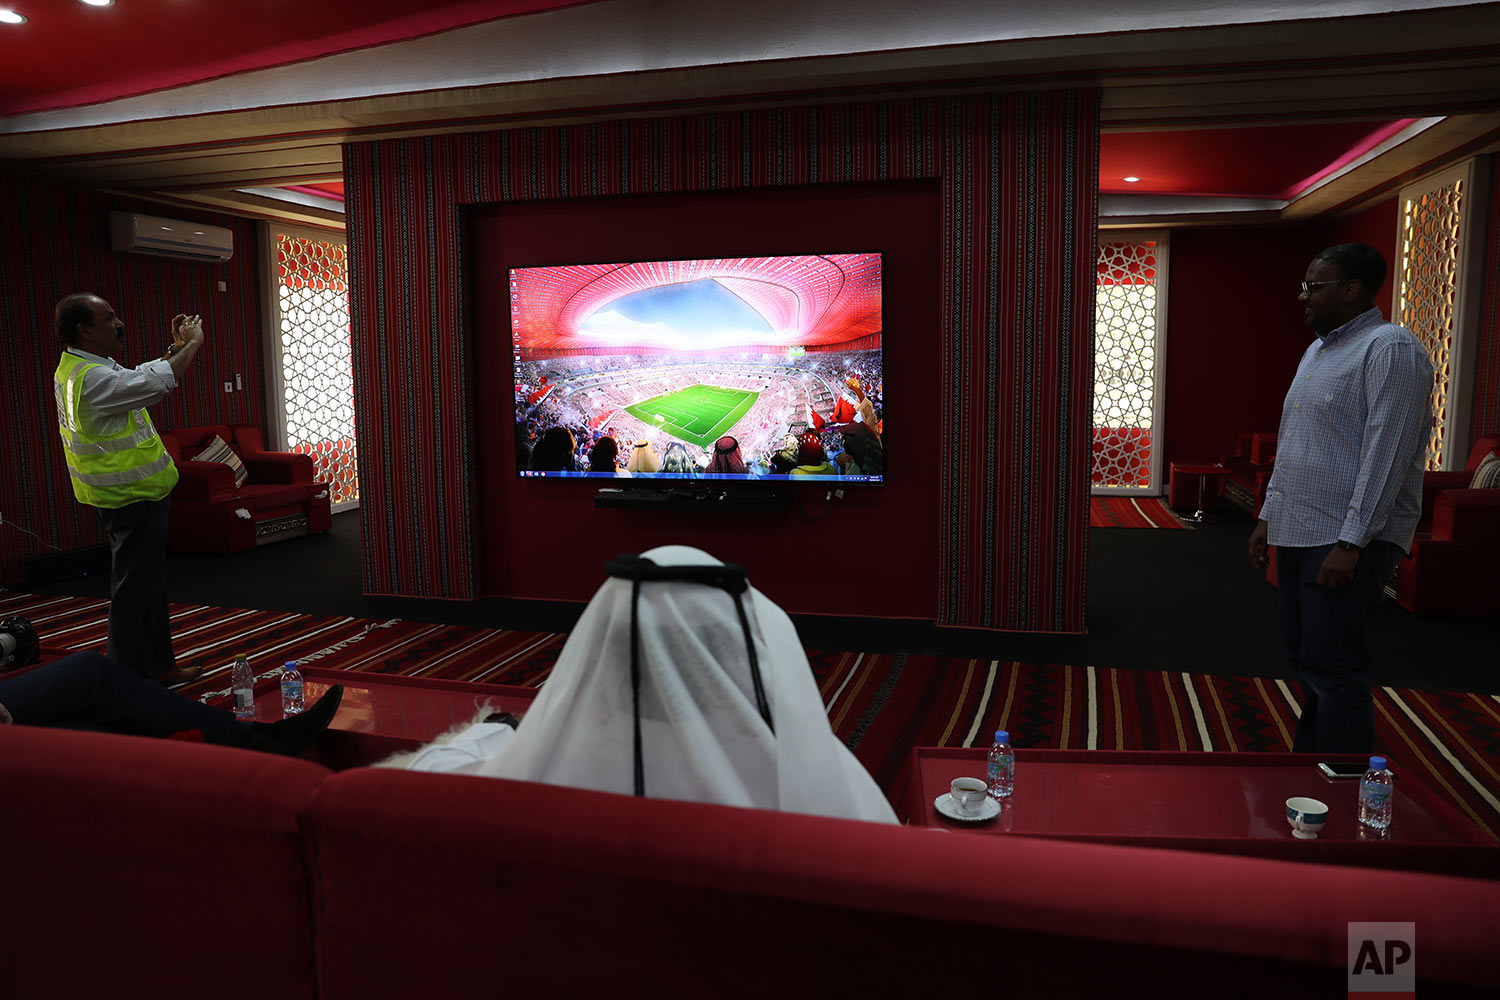 In this Monday, April 29, 2019 photo, visitors watch a presentation ahead of their tour at the Al Bayt stadium in Al Khor, about 50 kms, 30 miles, north of Doha, Qatar. (AP Photo/Kamran Jebreili)